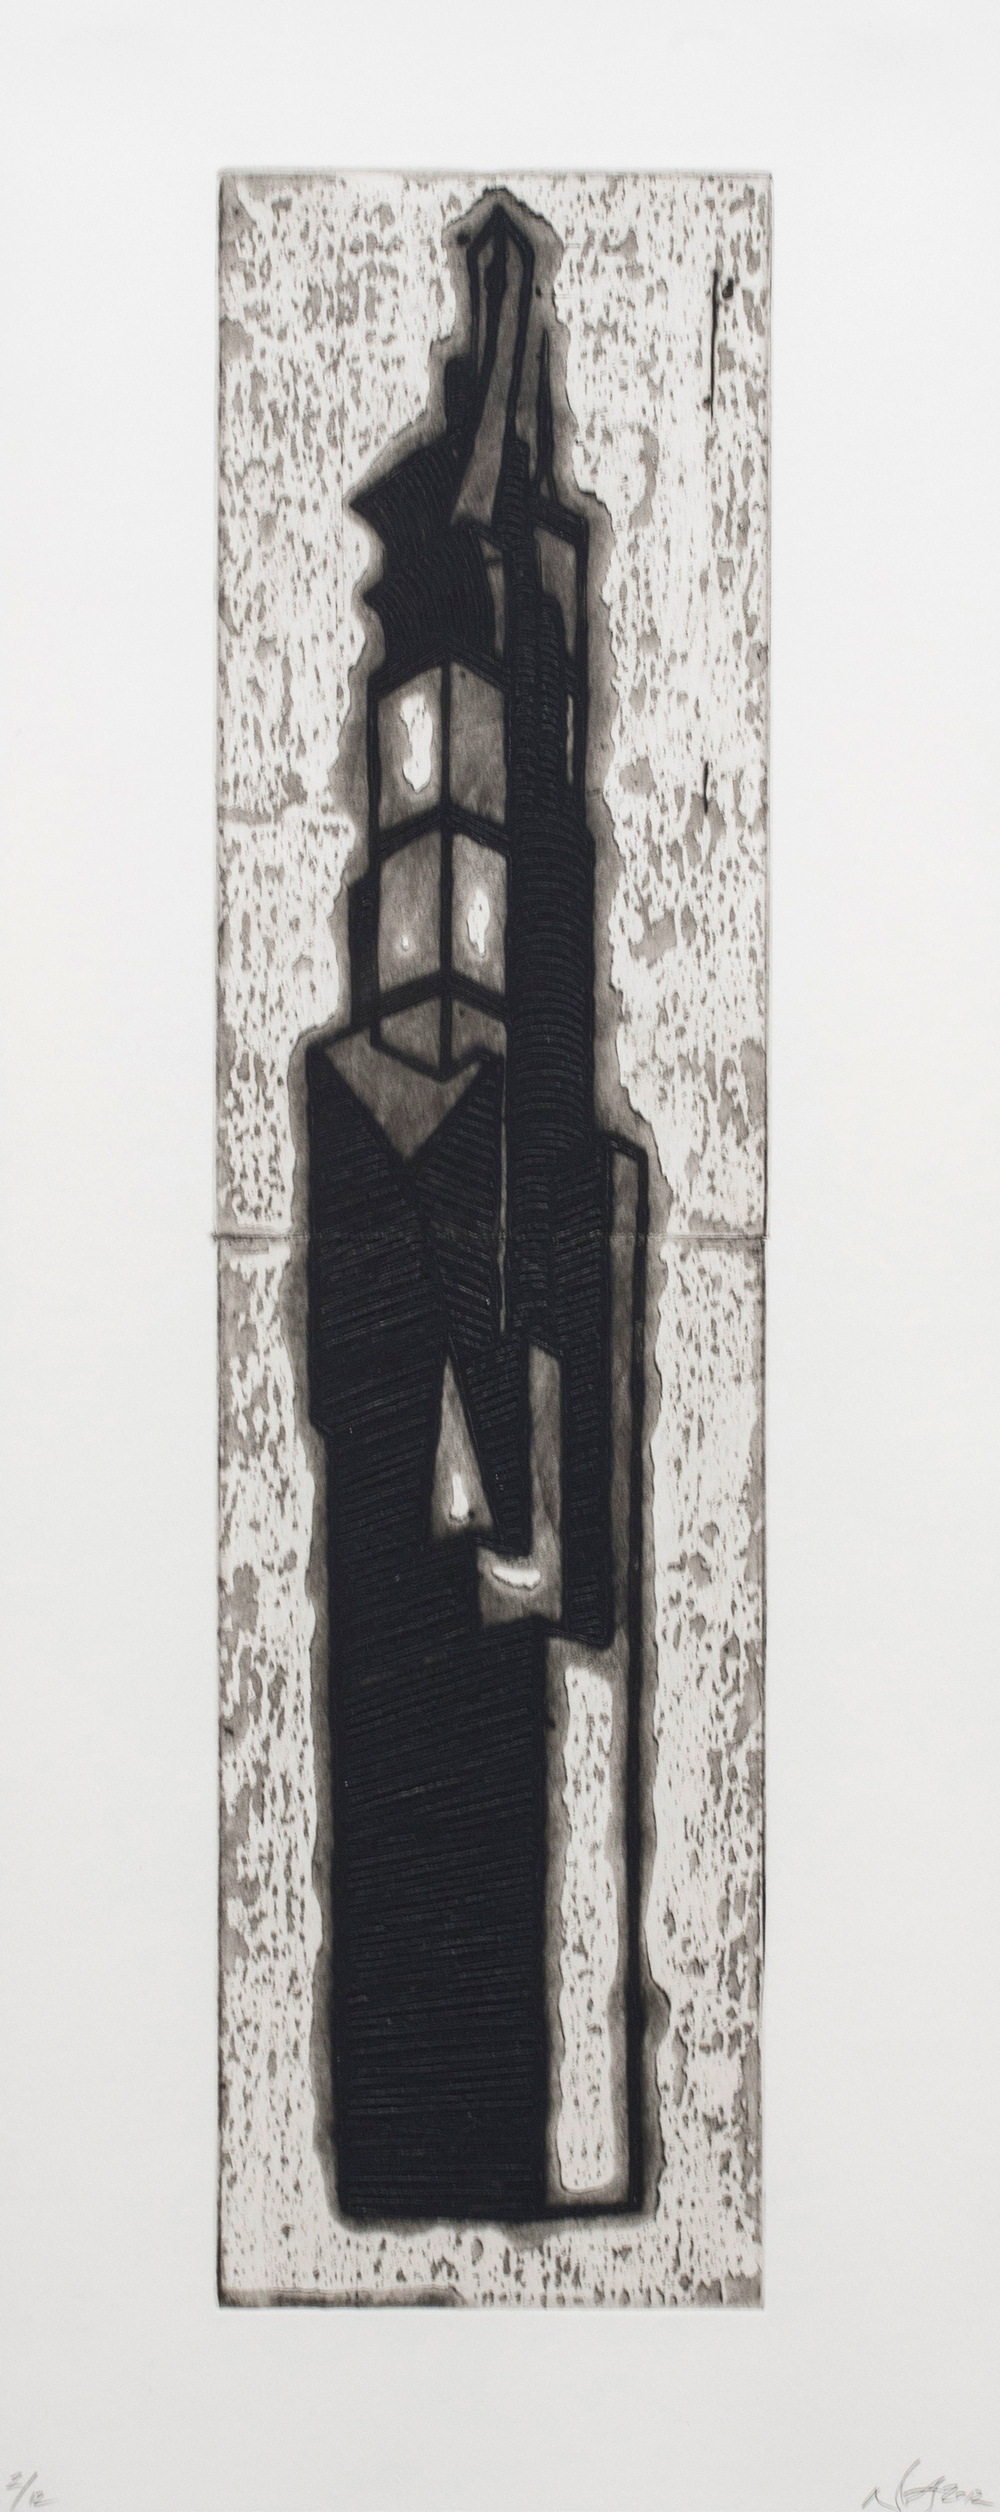 """Ideal Structures for a Dubious Future (Tallest Tower)  2012; Explosive intaglio on paper; 27 1/2"""" x 11""""; Self published; Edition of 12"""